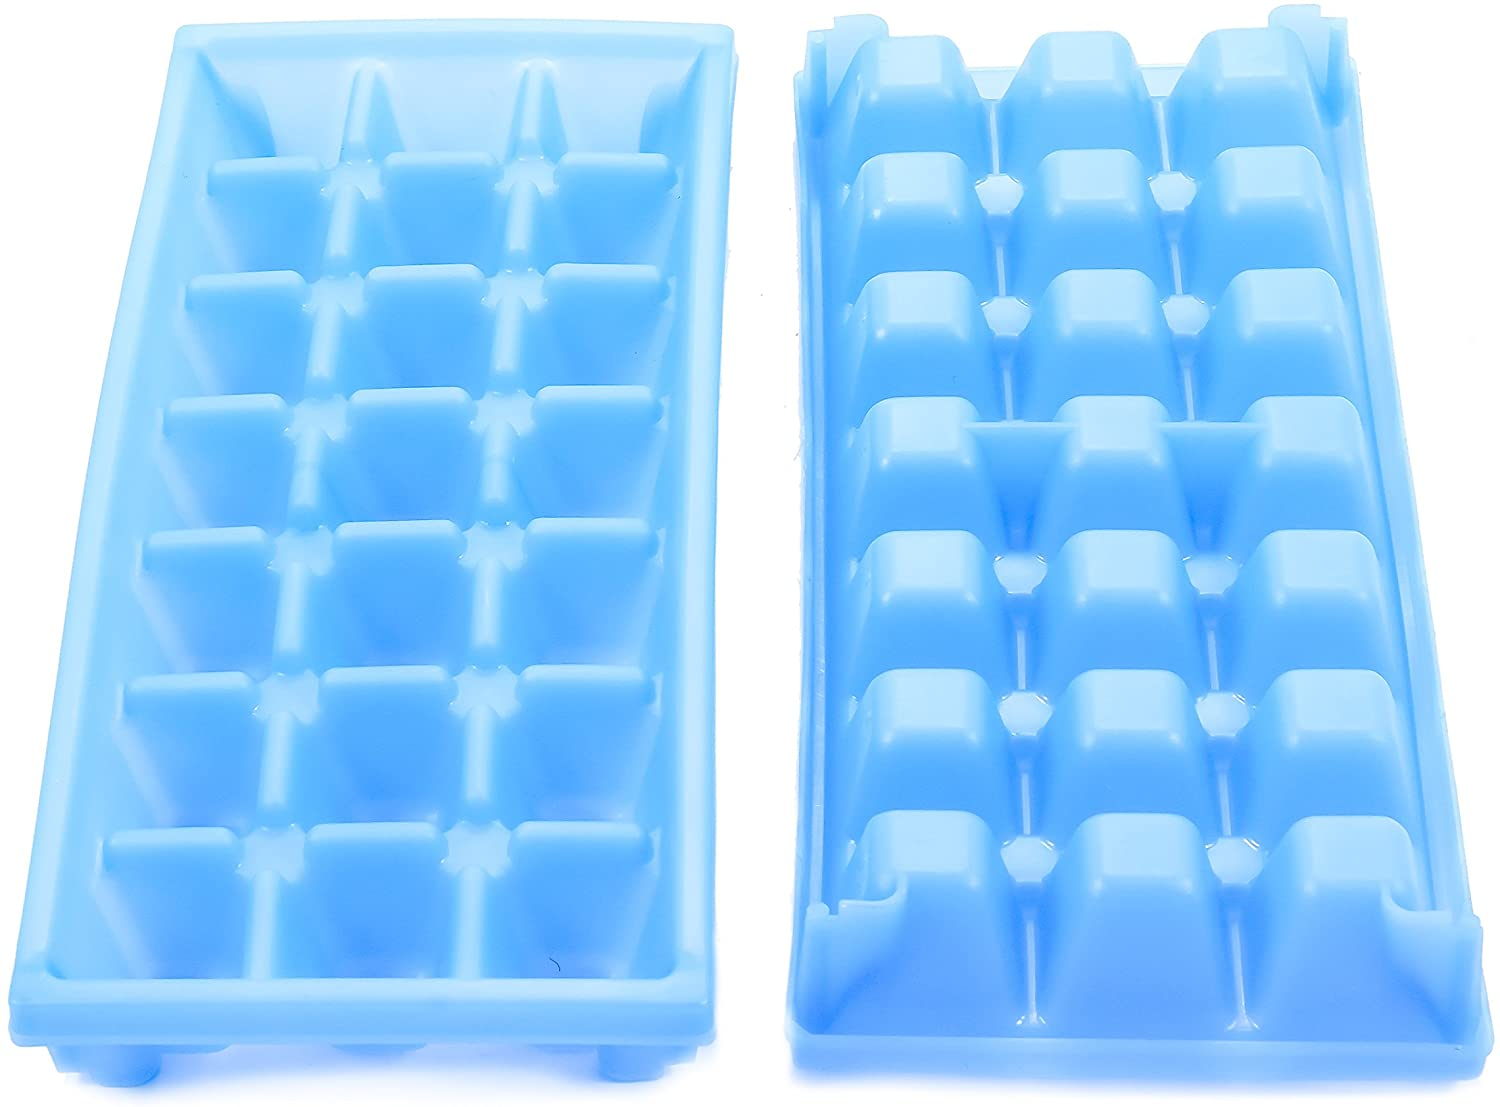 Camco Stackable Miniature Ice Cube Tray for Mini Fridges, RV/Marine, Dorm Small Freezers, (2 Pack) (44100), Blue